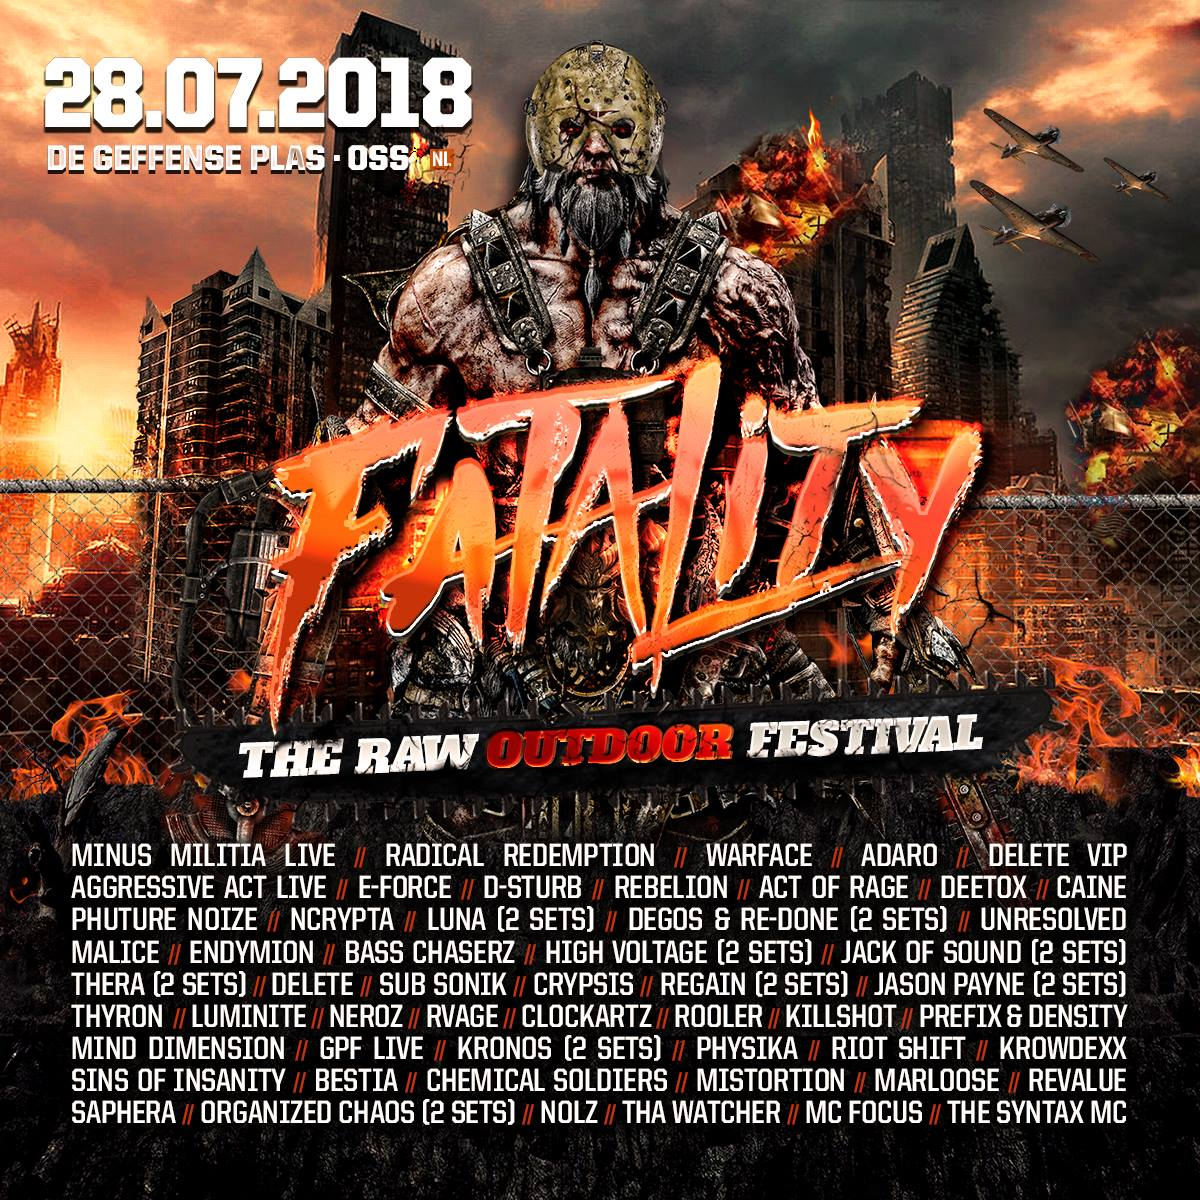 Fatality - The Raw Outdoor Festival 2018